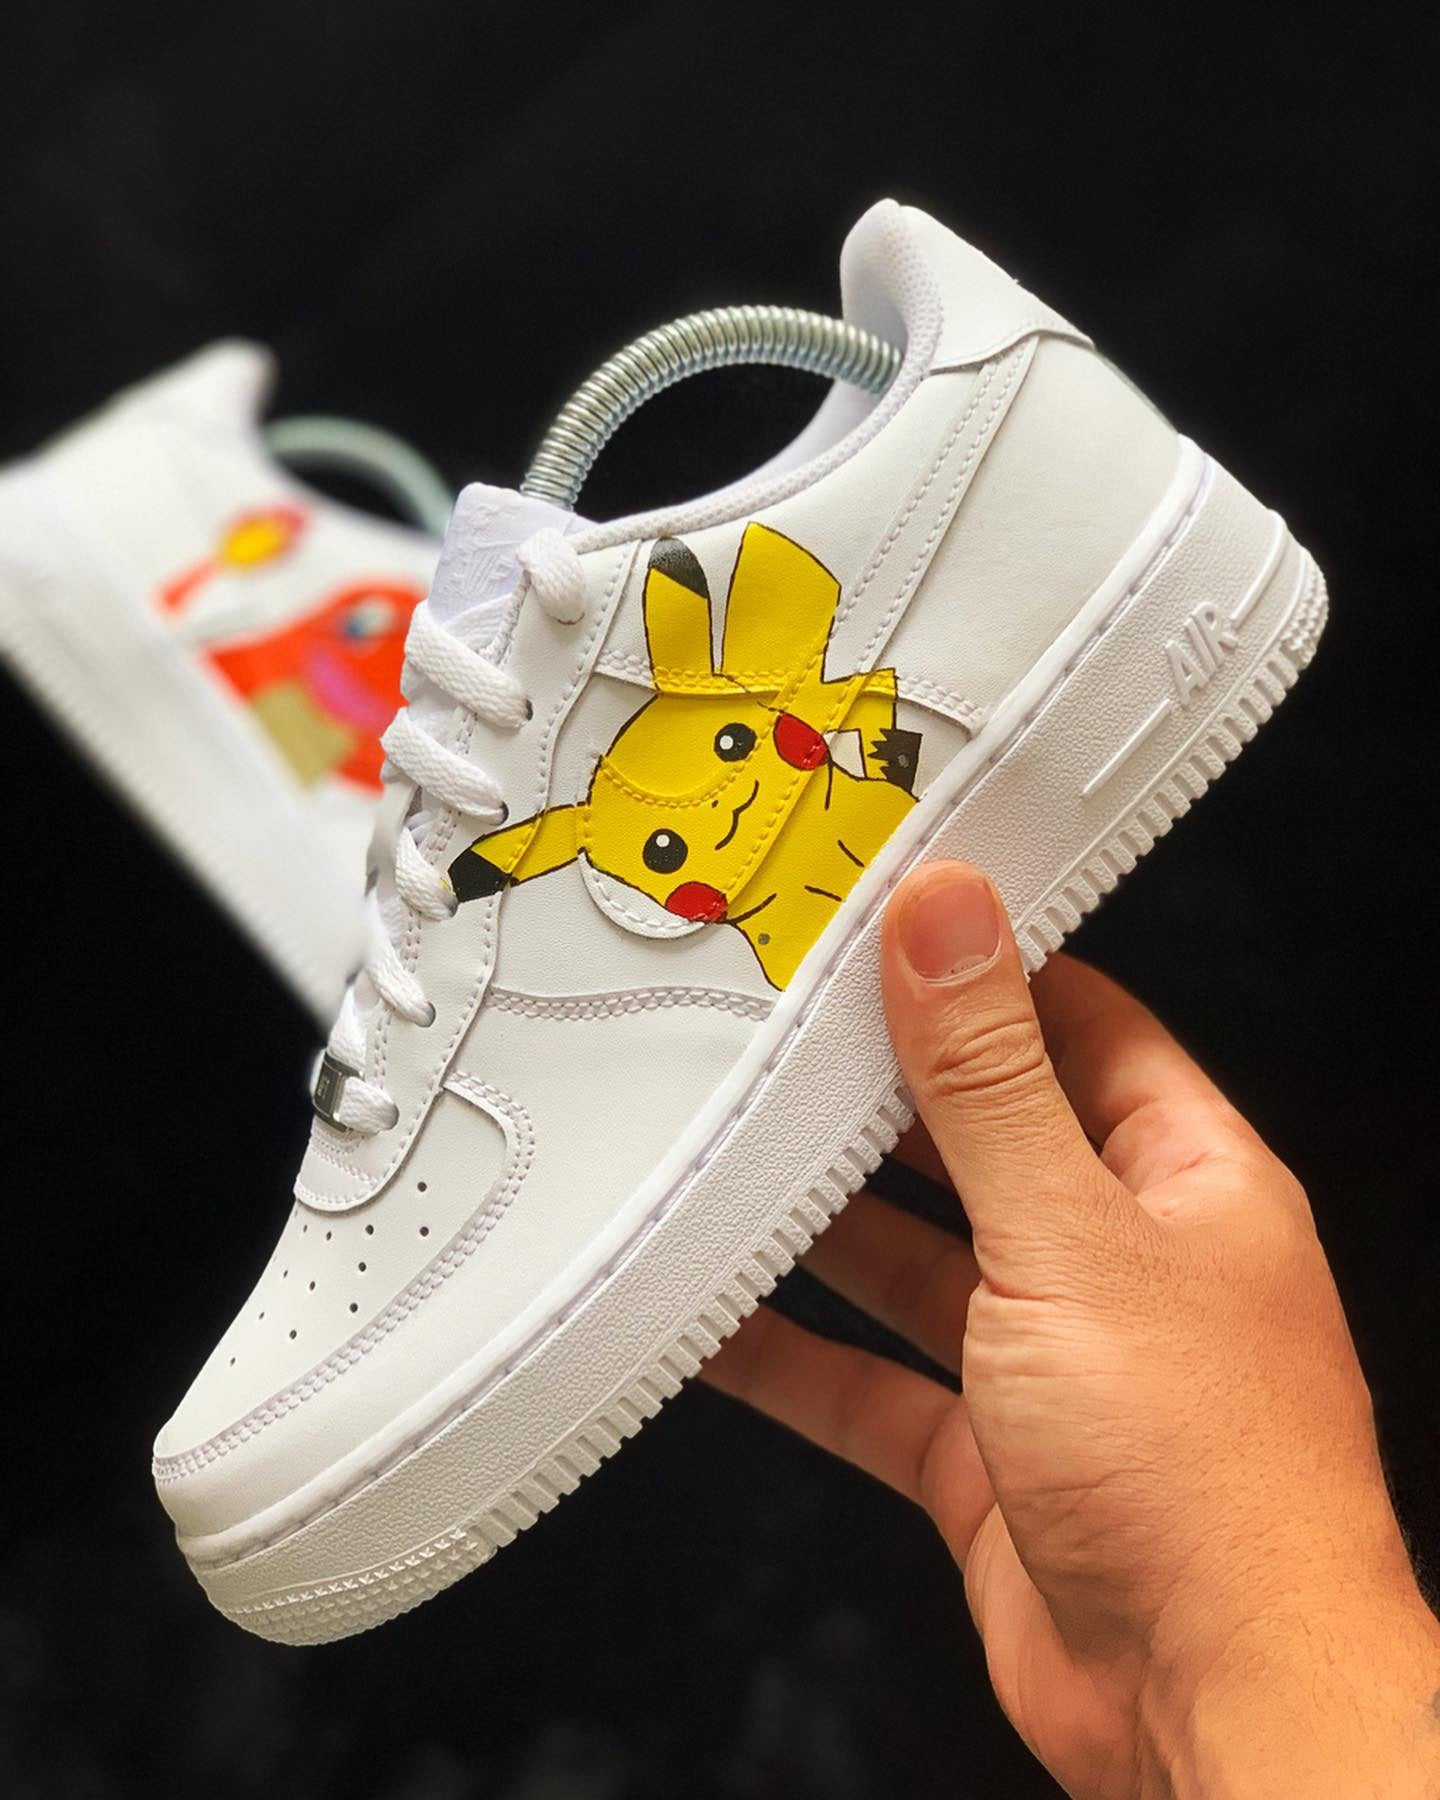 AIR FORCE ONE : Pokémon